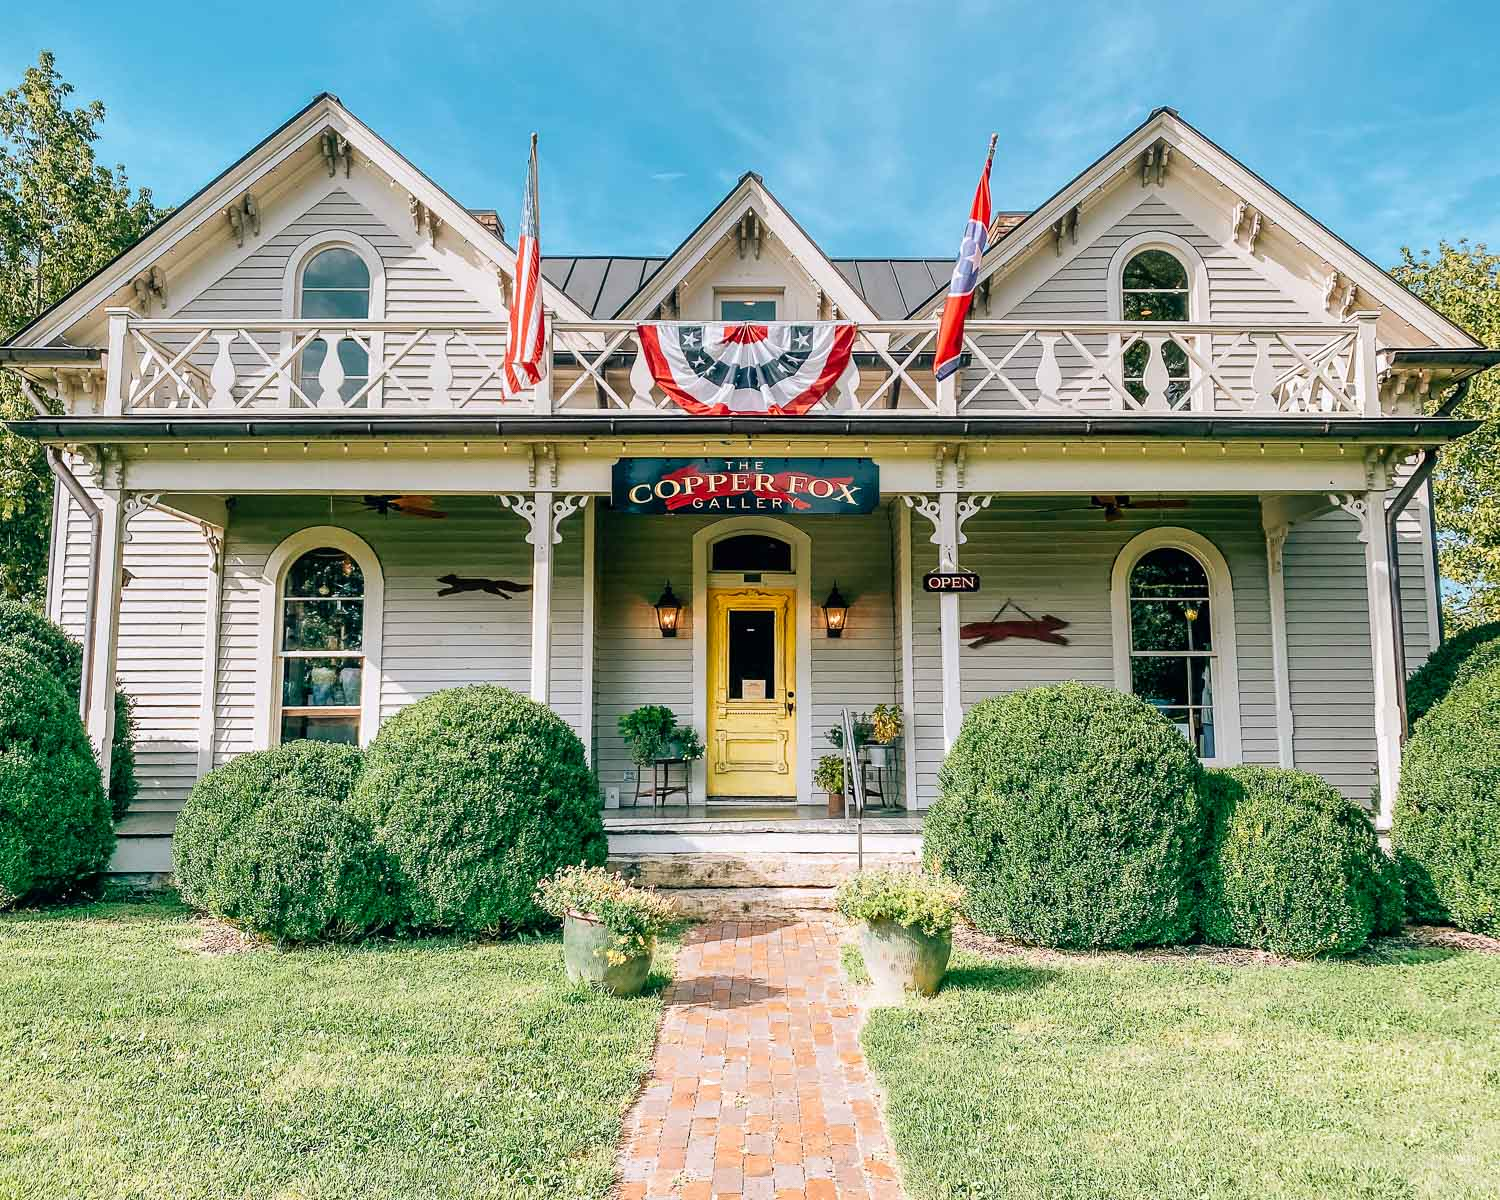 Historic southern home that is now the Copper Fox Gallery in Leiper's Fork, Tennessee. There is an American flag and Tennessee state flag hanging from the upstairs balcony.